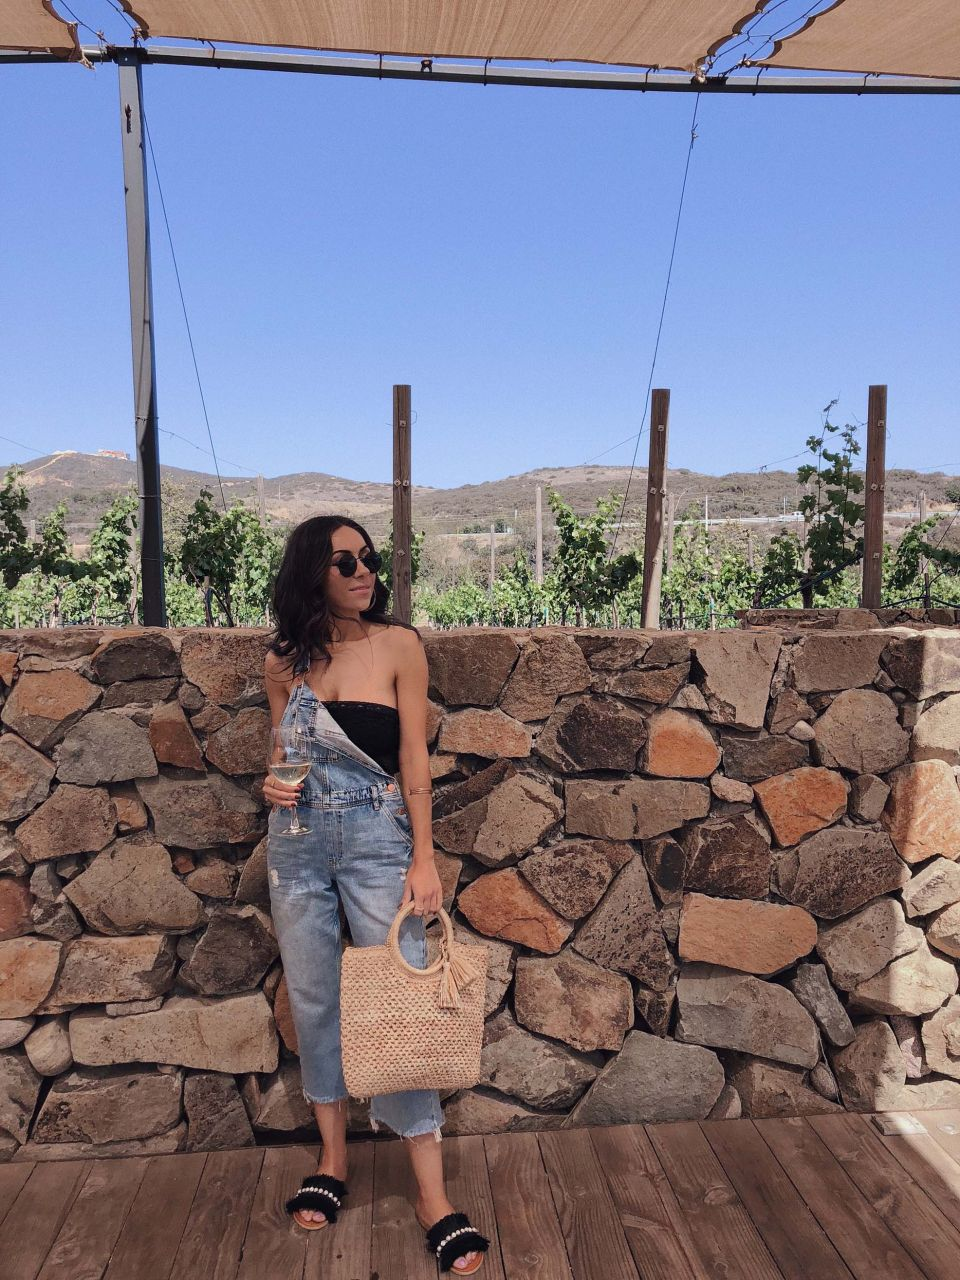 Style_with_Nihan_Cuatro_Cuatros_Winery_Valle_De_Guadalupe_Mexico